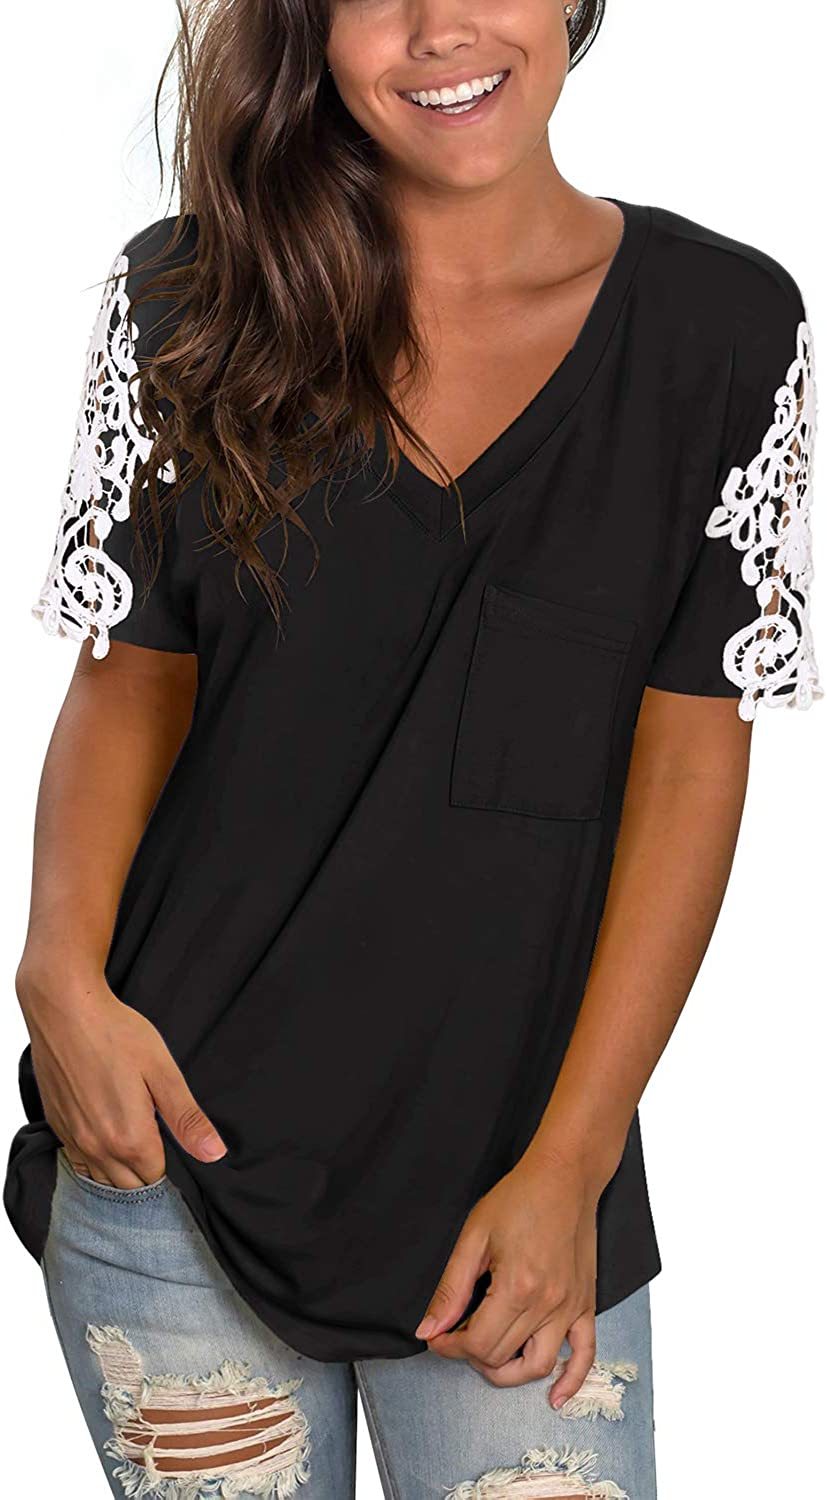 Sieanear Women's Lace Short Sleeve V-Neck T-Shirt Loose Casual Summer Tee Tops